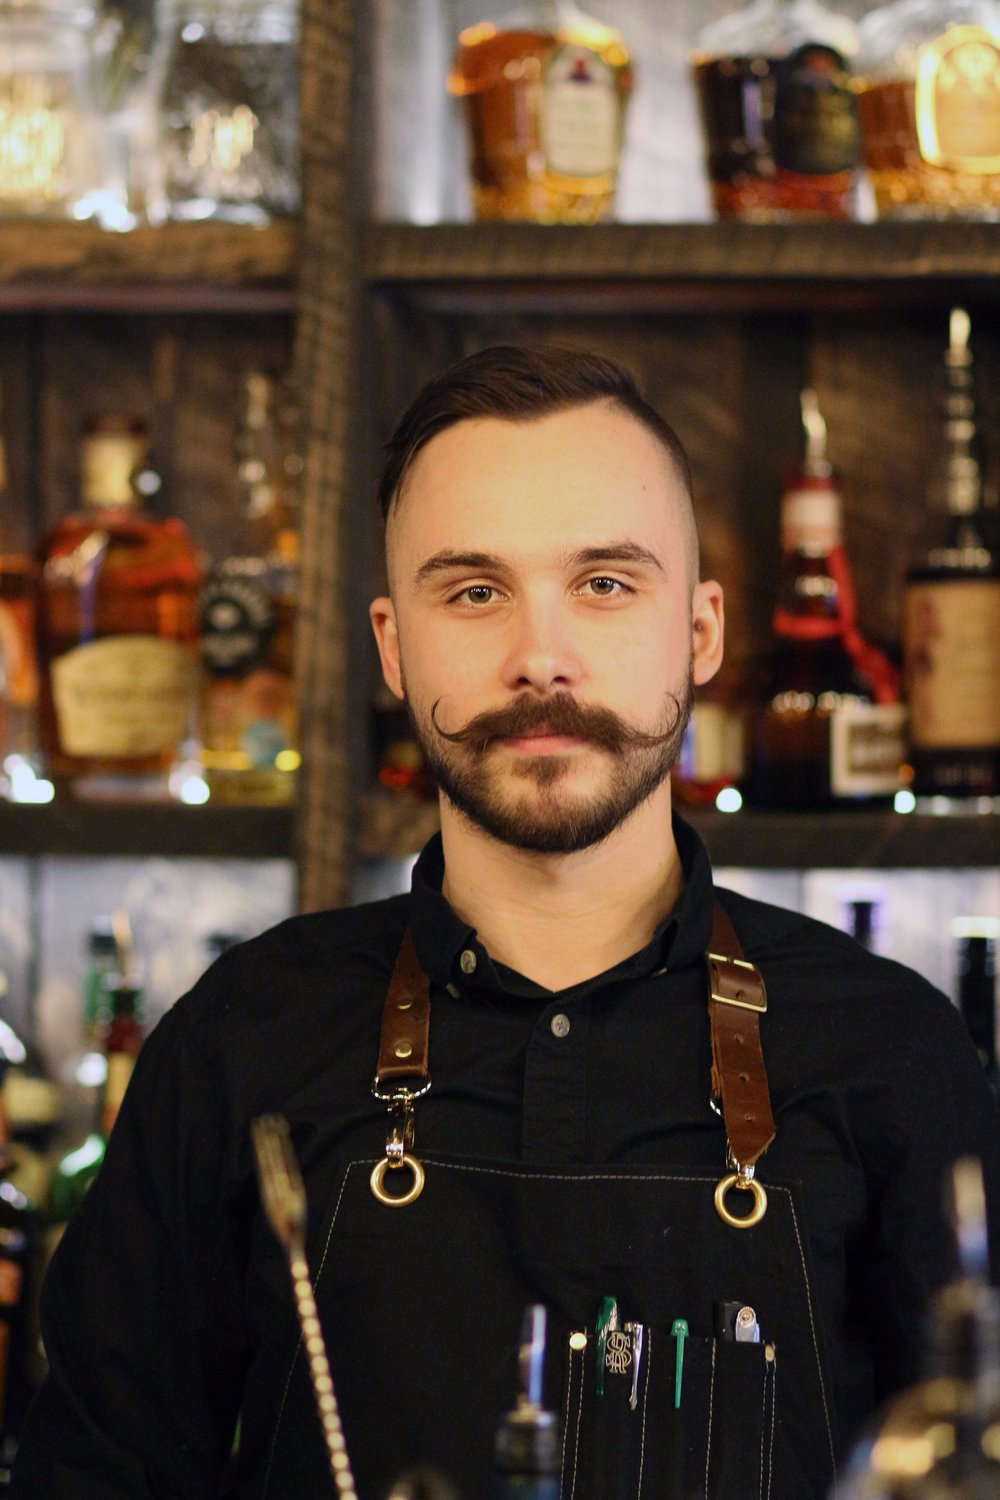 Nate Manns - Nate has been practicing the art of mixology for years now and as of recently his craft has taken him to 21 Fir where he has been working since mid November of this year. The Waterloo University graduate takes great pride in his art and consistently aims to not only make the perfect drink, but create the perfect experience for the customer.  I sat down with experienced bartender Nate Manns and asked him a couple questions.What is your favorite beer 21 Fir has to offer?